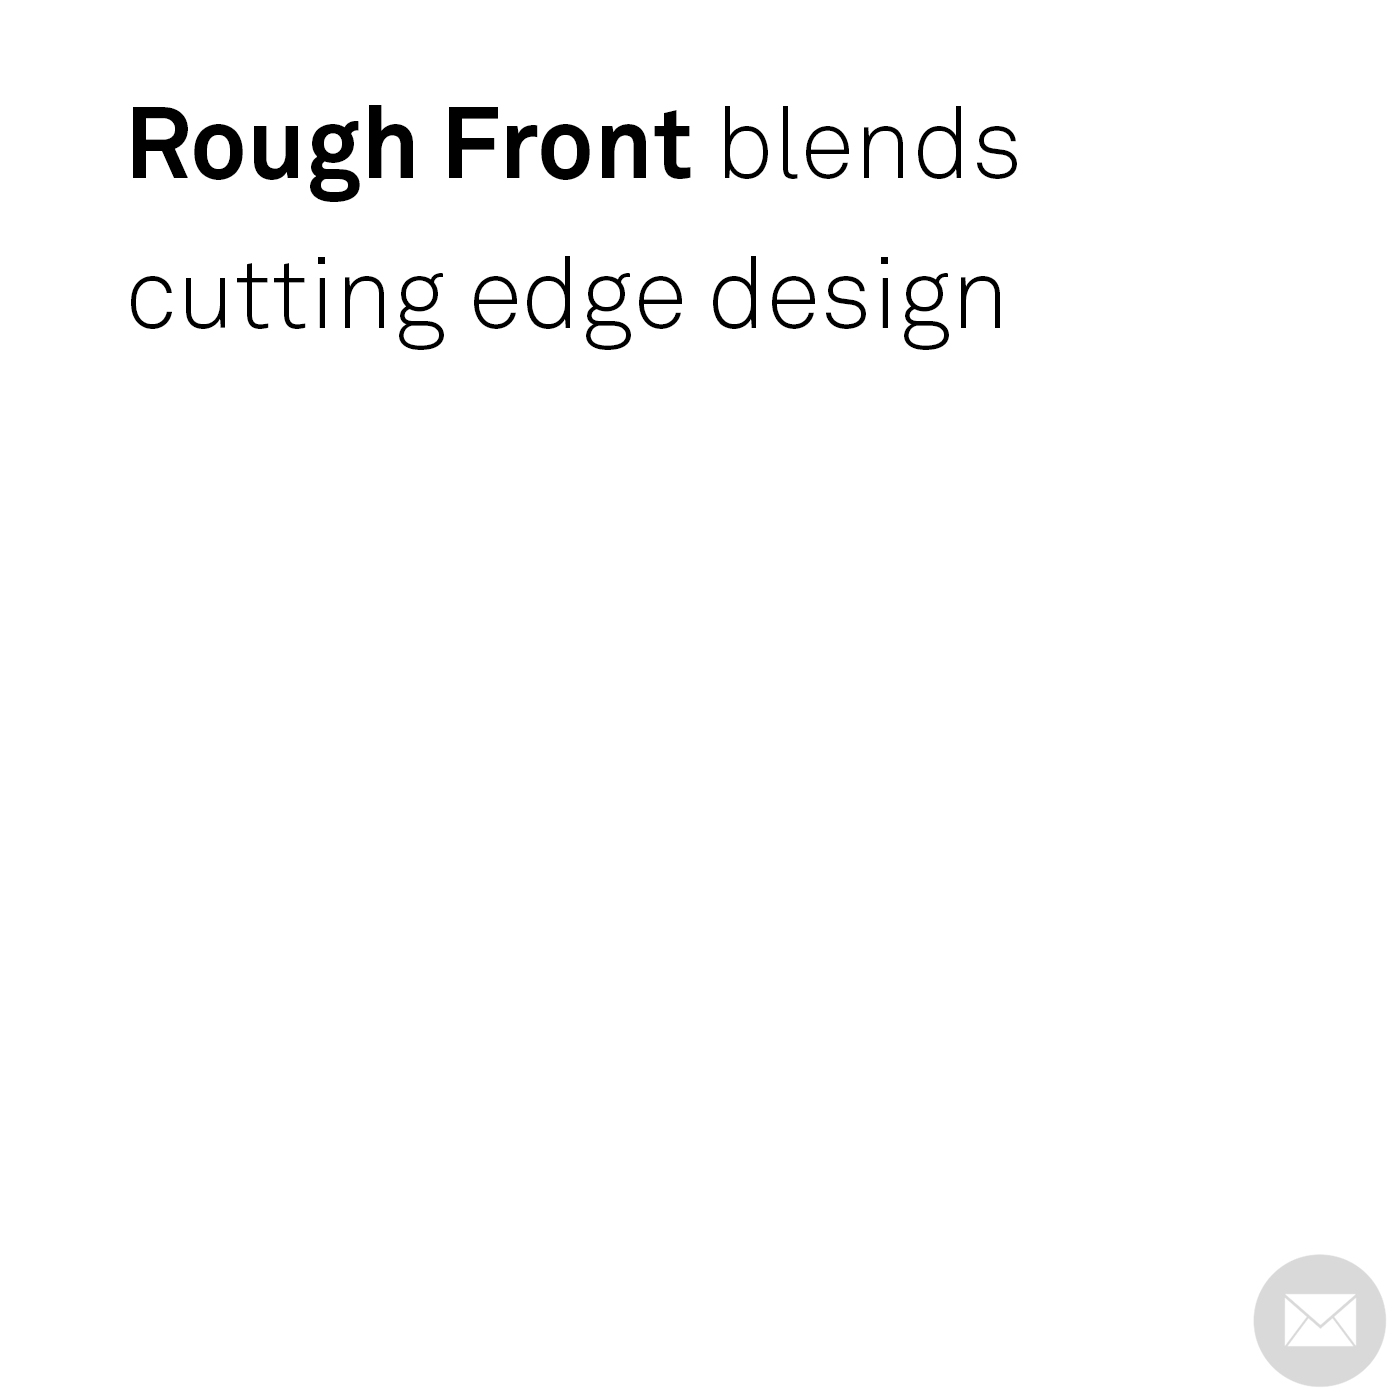 Rough Front is -envelope- 031.jpg